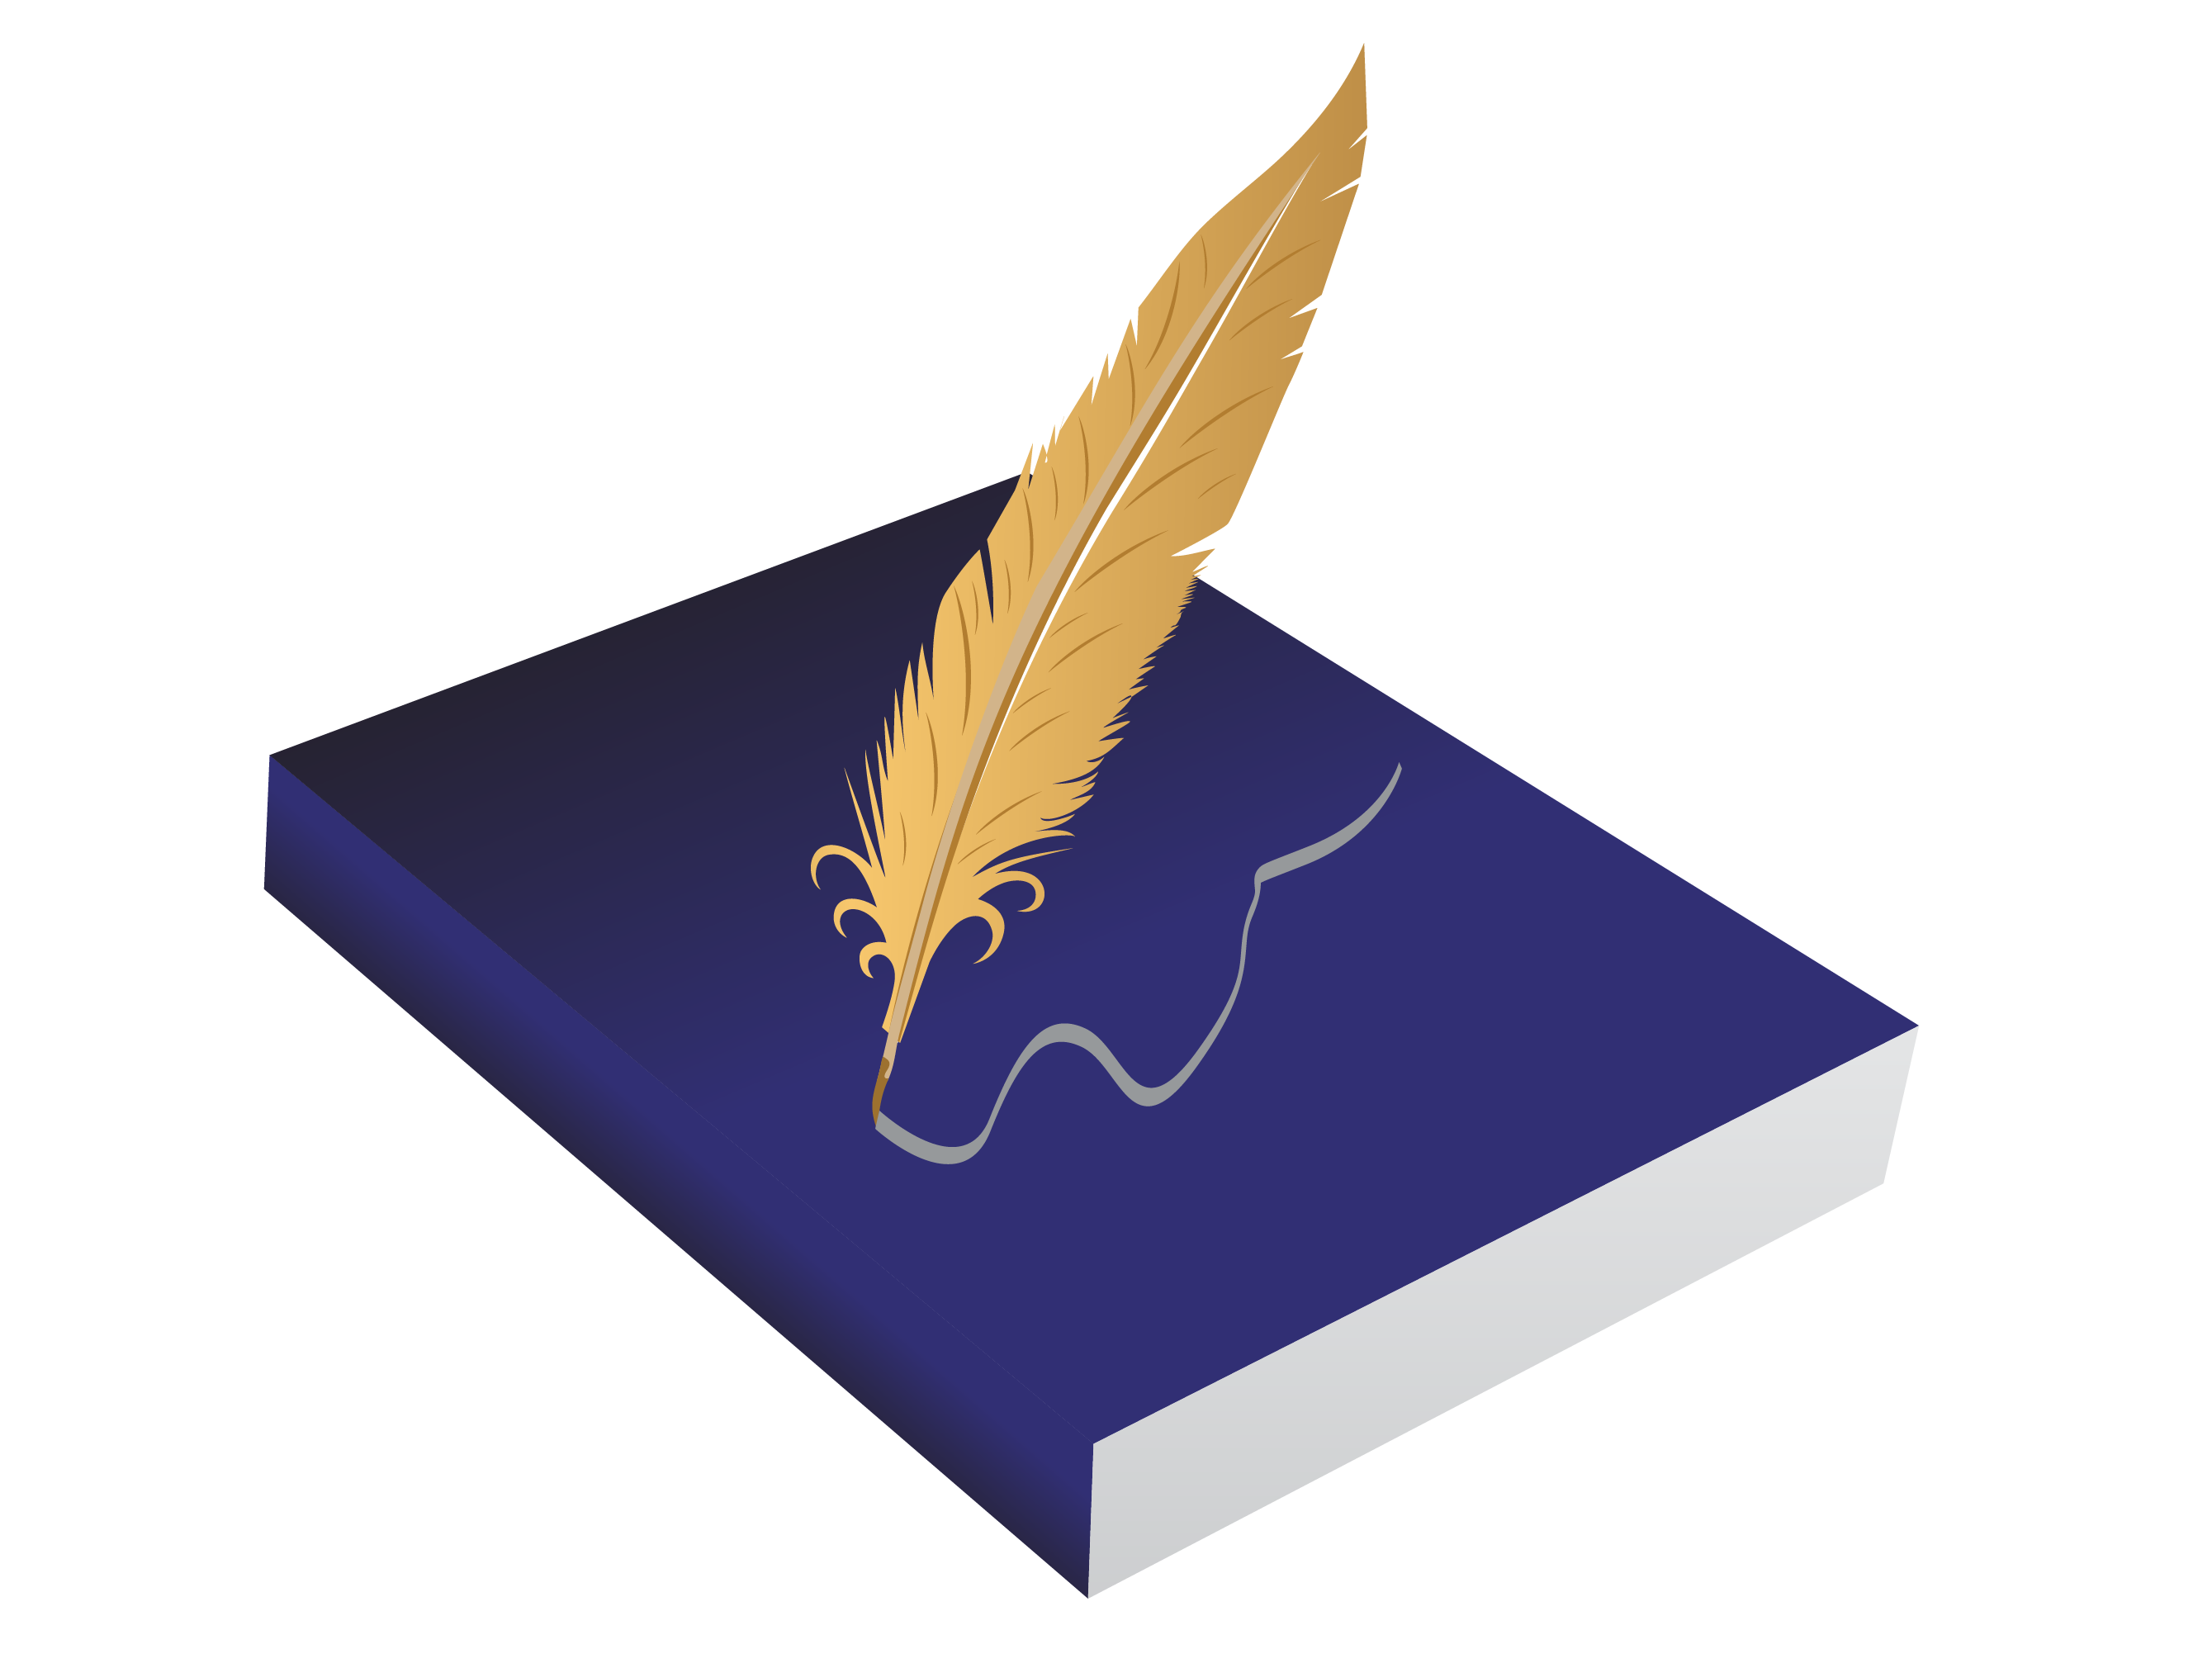 Drawing clip art book. Feather clipart quill